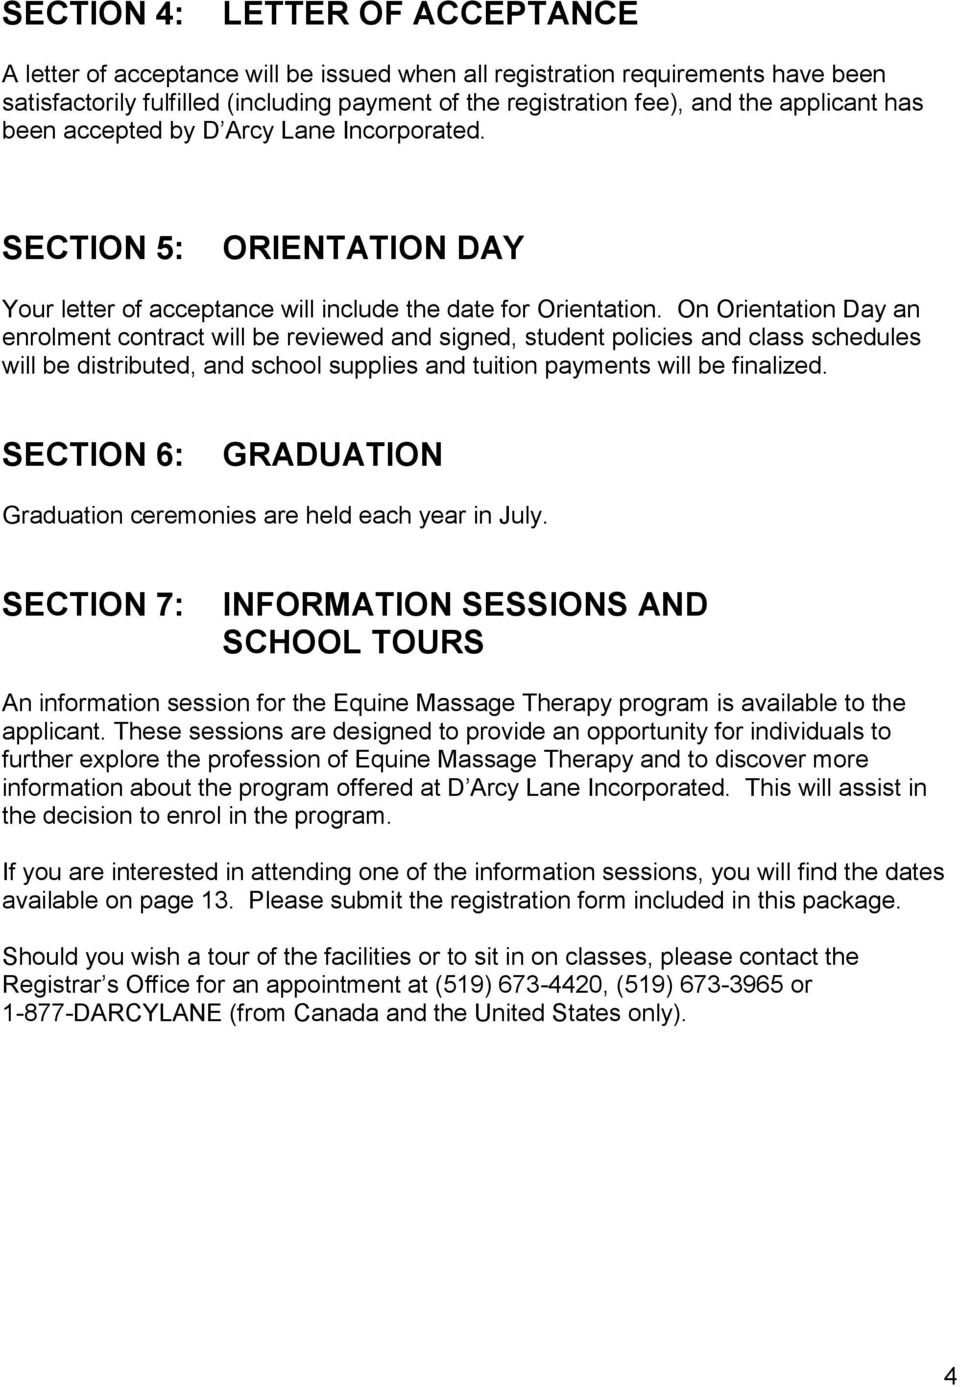 On Orientation Day an enrolment contract will be reviewed and signed, student policies and class schedules will be distributed, and school supplies and tuition payments will be finalized.